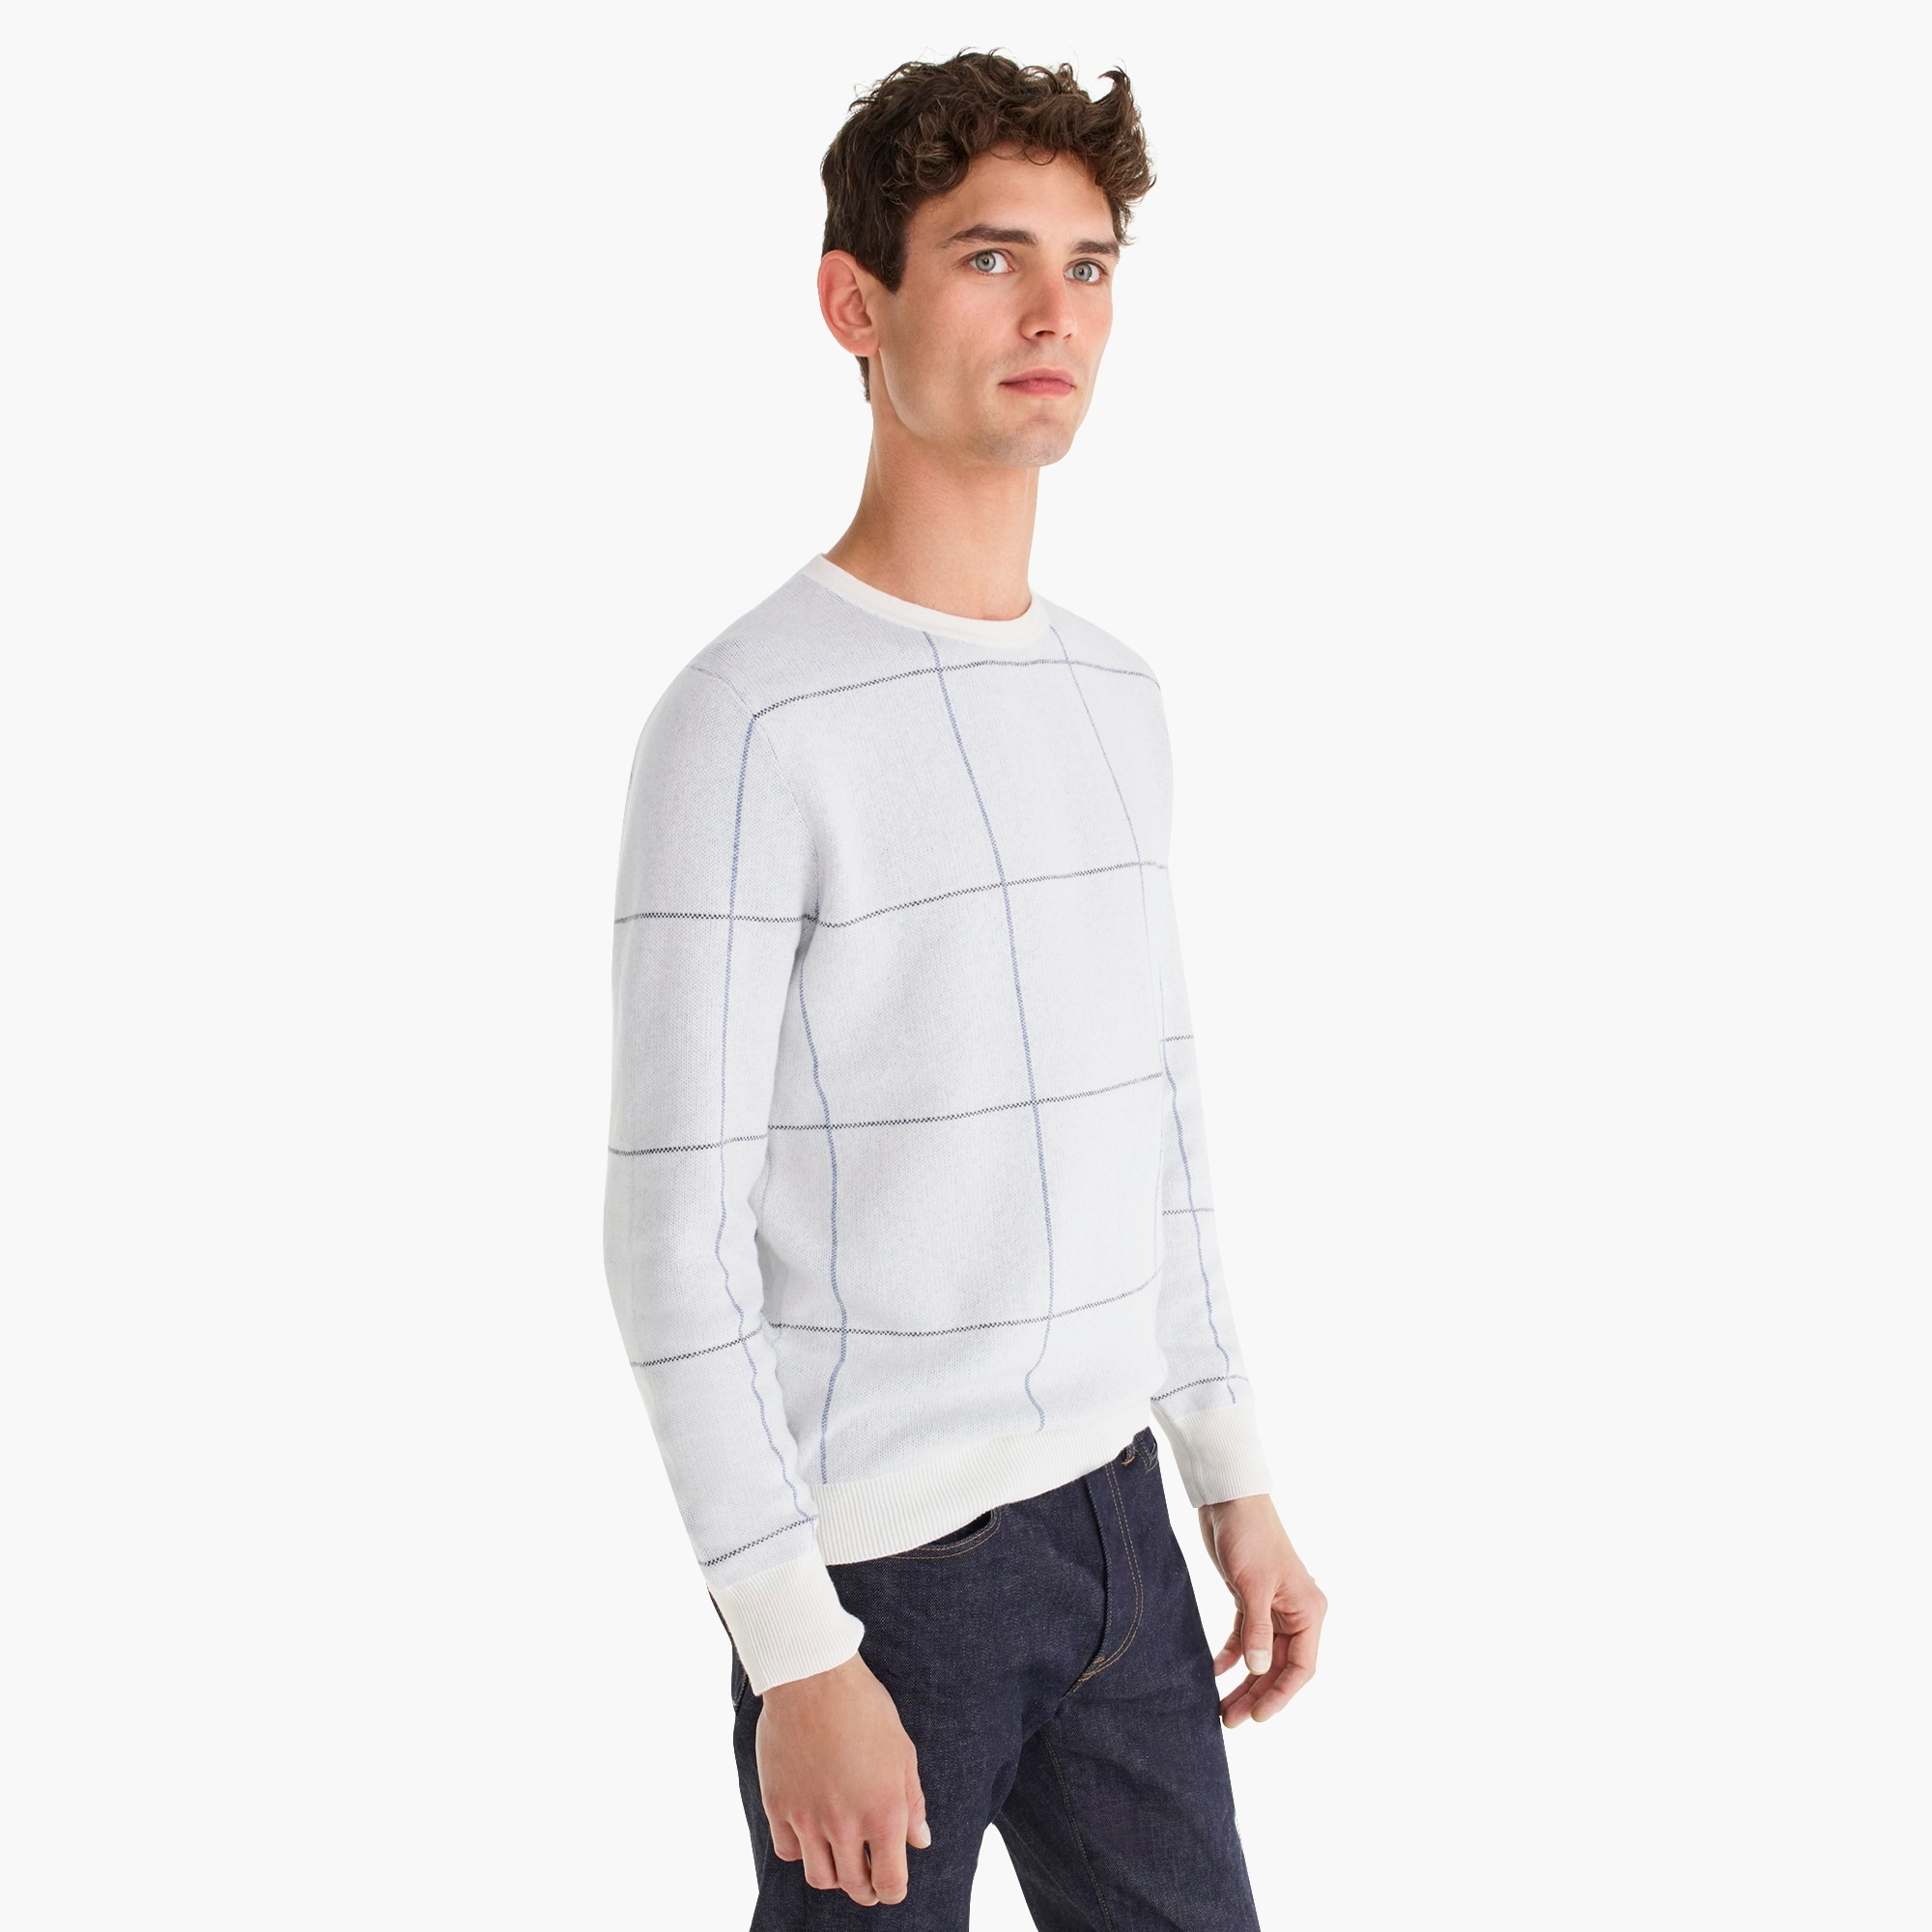 Cotton-cashmere two-color crewneck sweater in windowpane